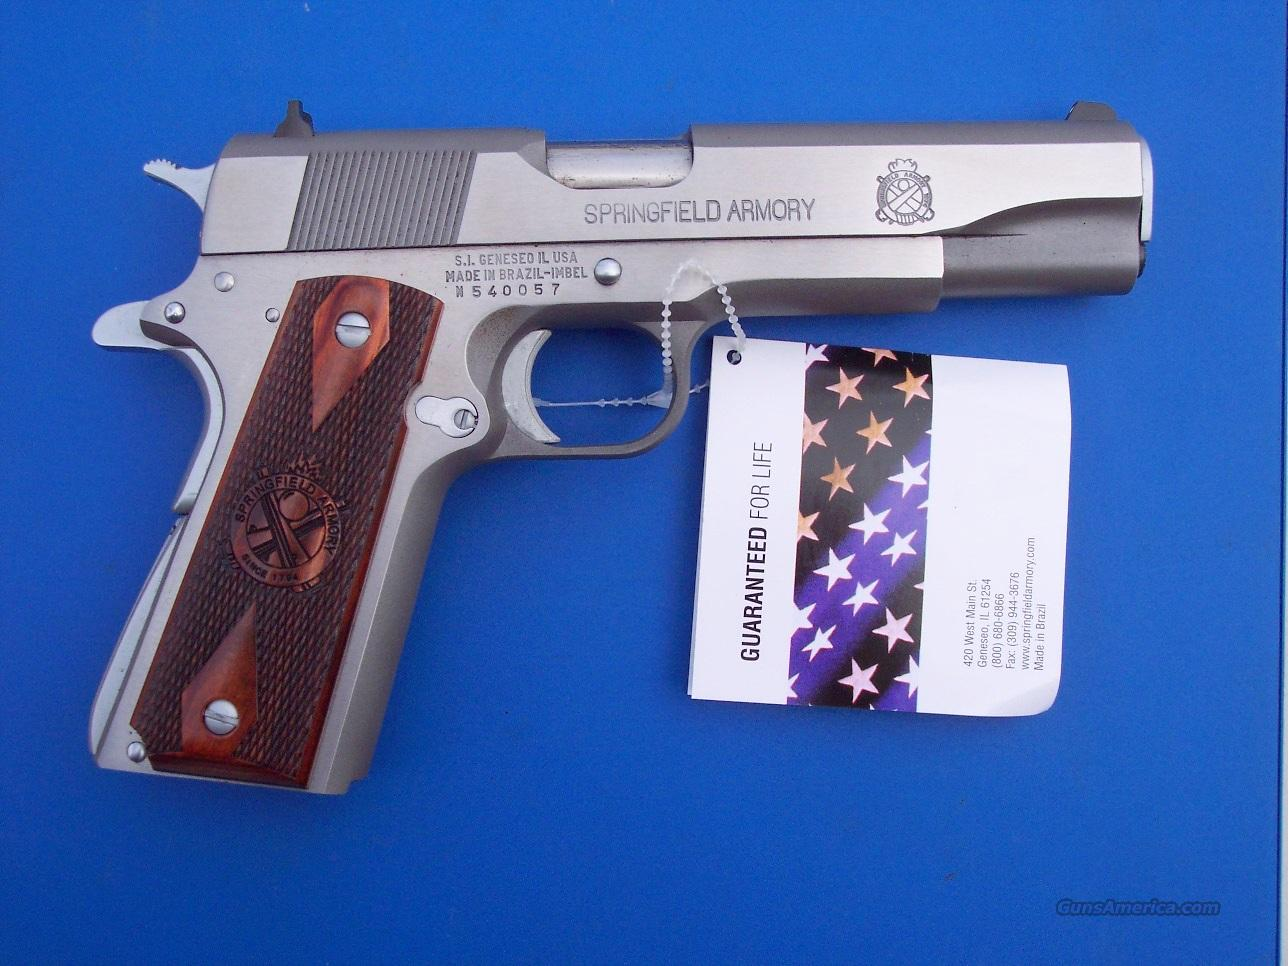 Springfield Armory 1911 Stainless Mil Spec Gear Pkg NEW  Guns > Pistols > Springfield Armory Pistols > 1911 Type